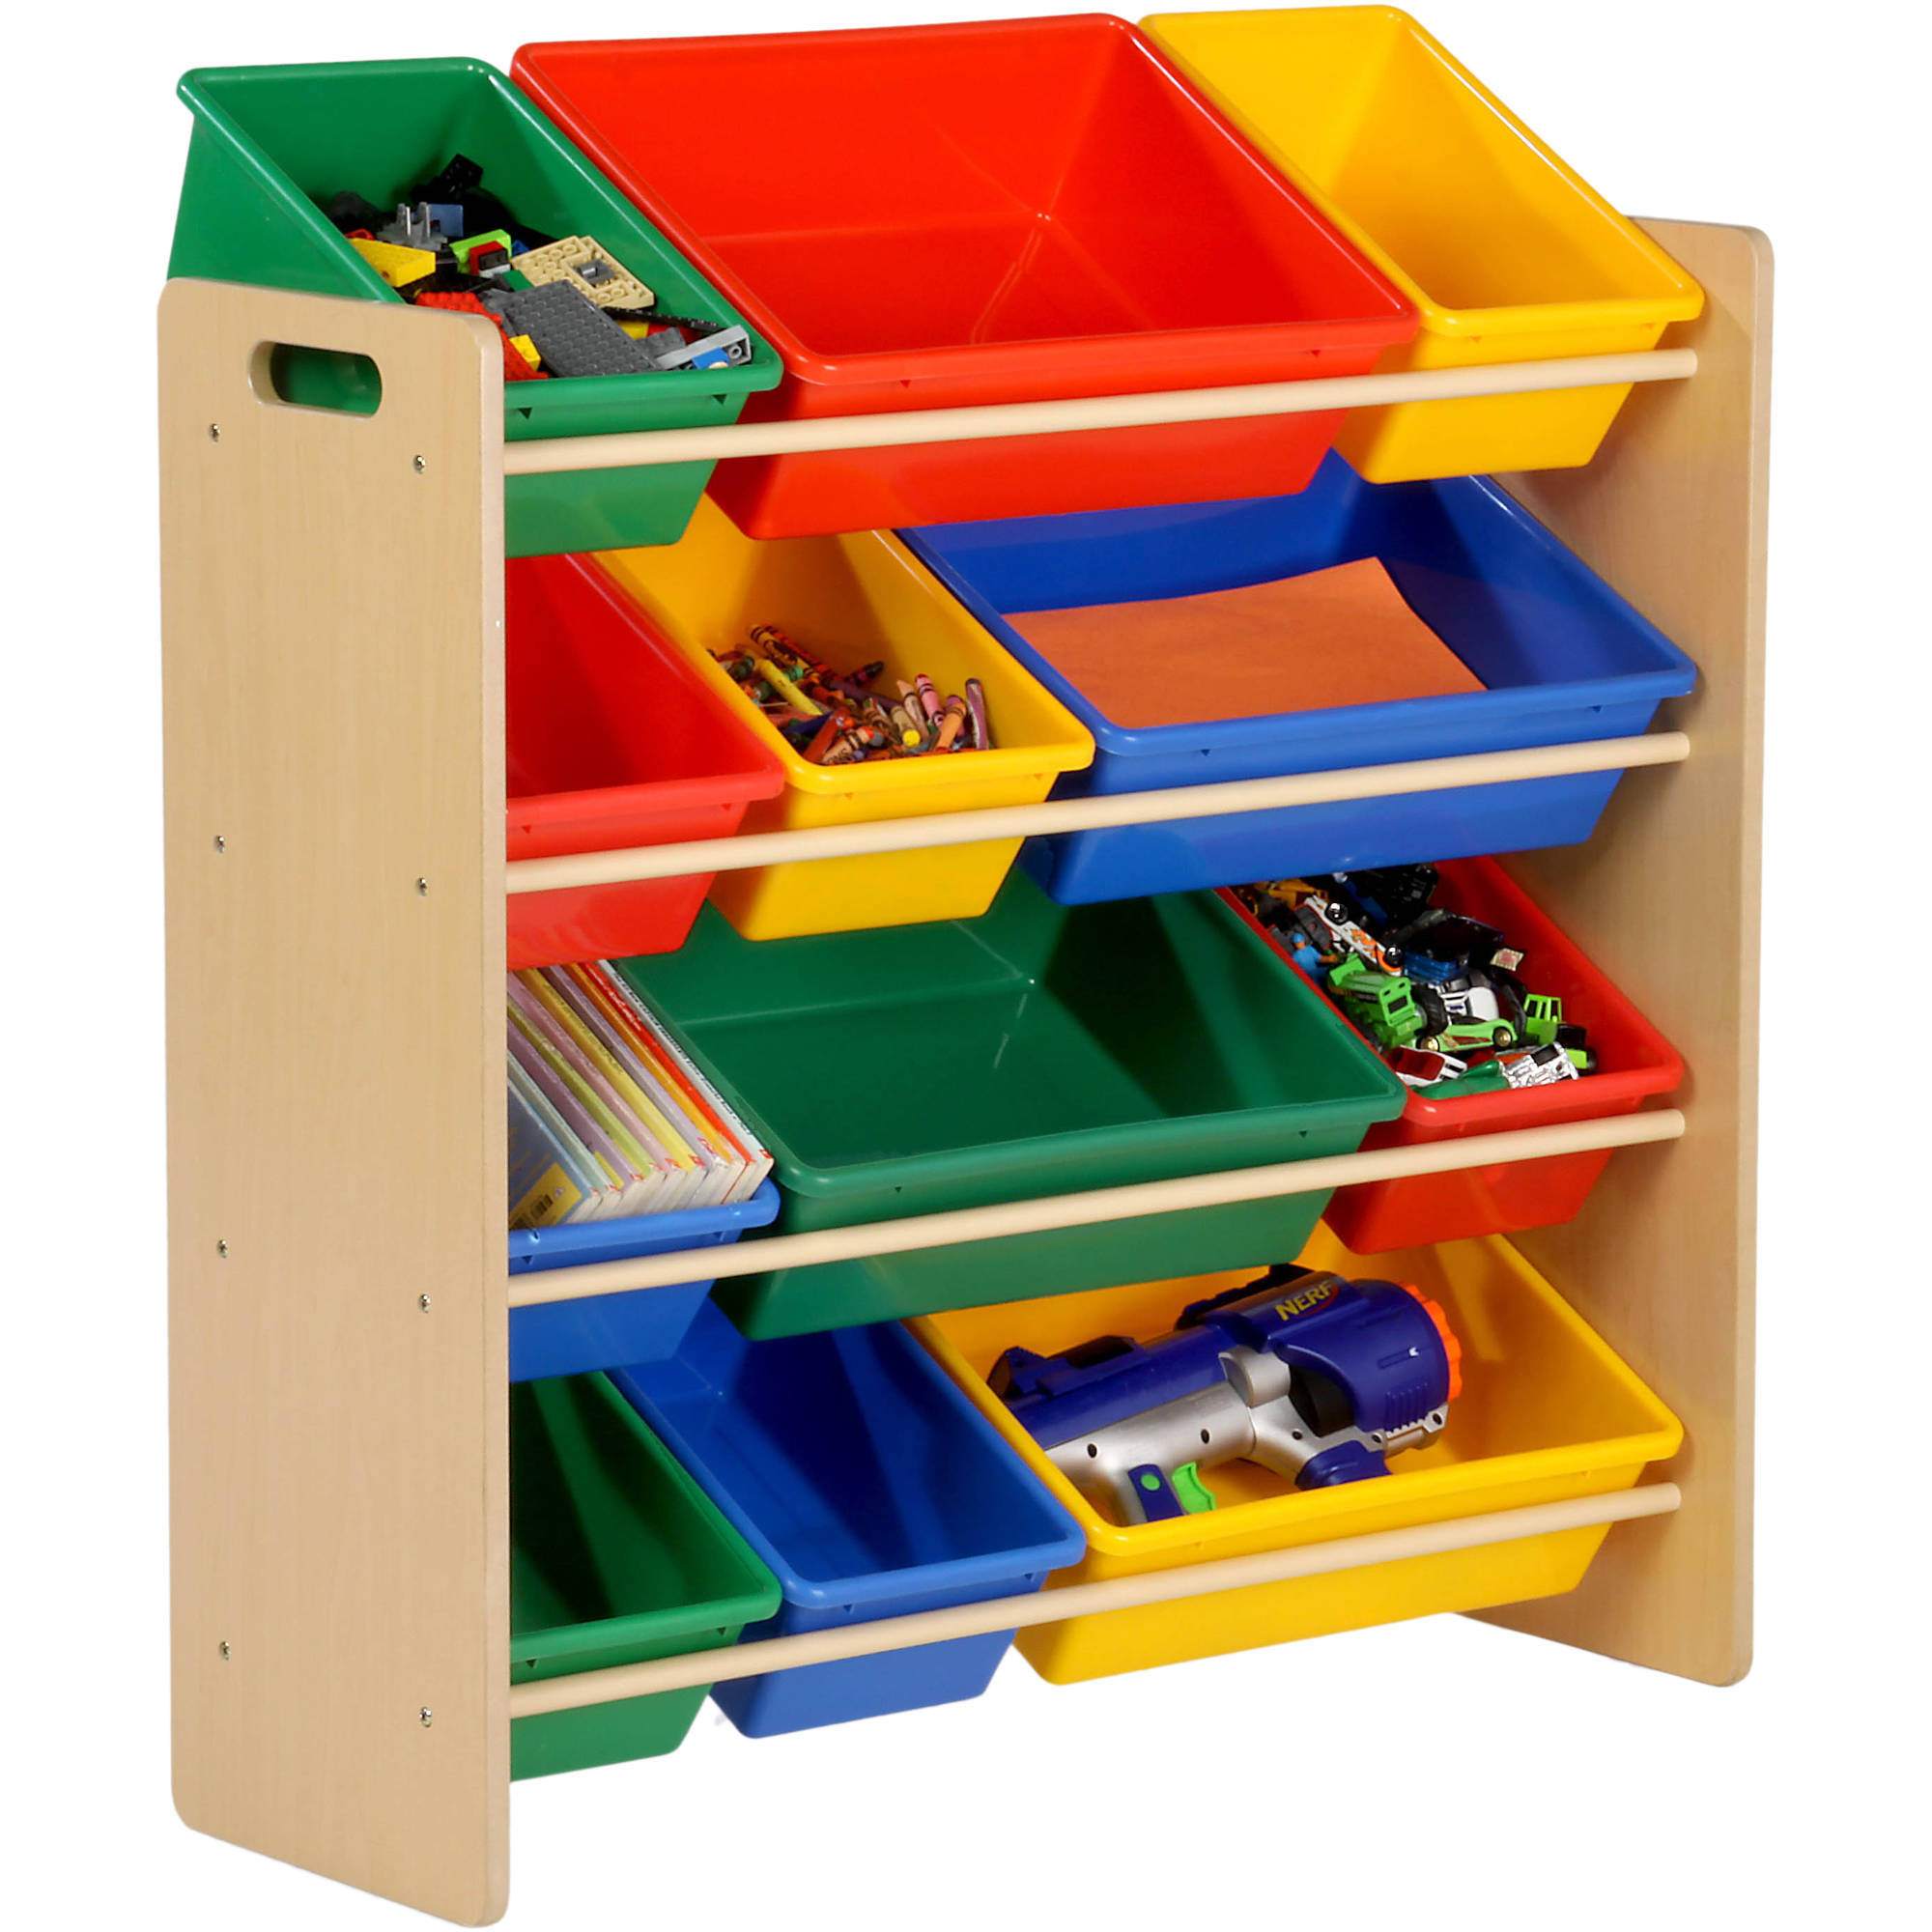 Honey Can Do Kid's Toy Organizer with 12 Storage Bins, Multicolor -  Walmart.com